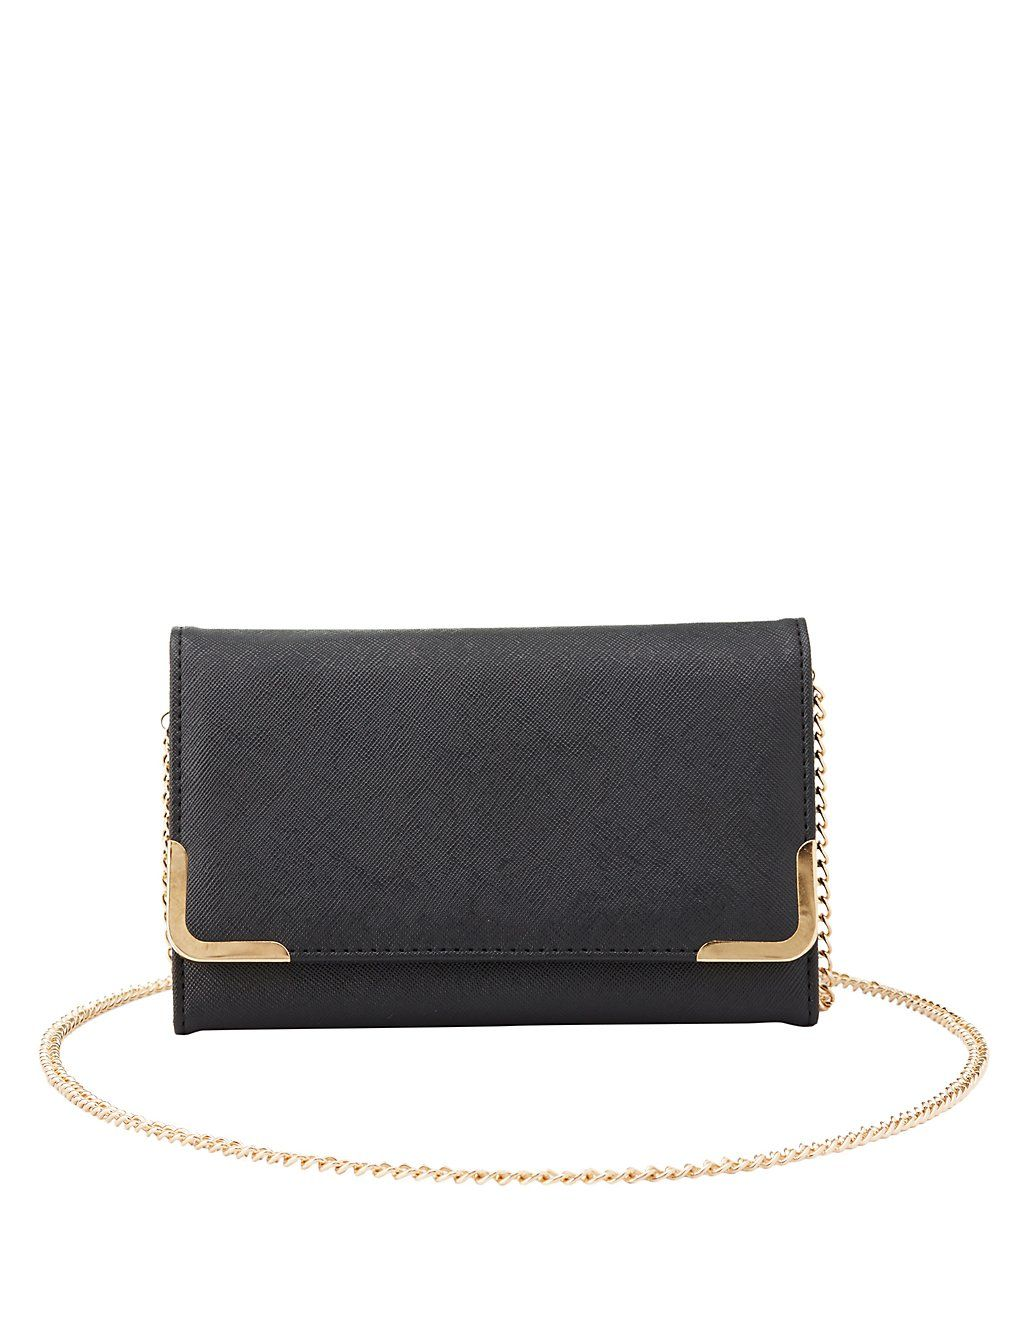 Gold-Tipped Convertible Crossbody Bag   Charlotte Russe